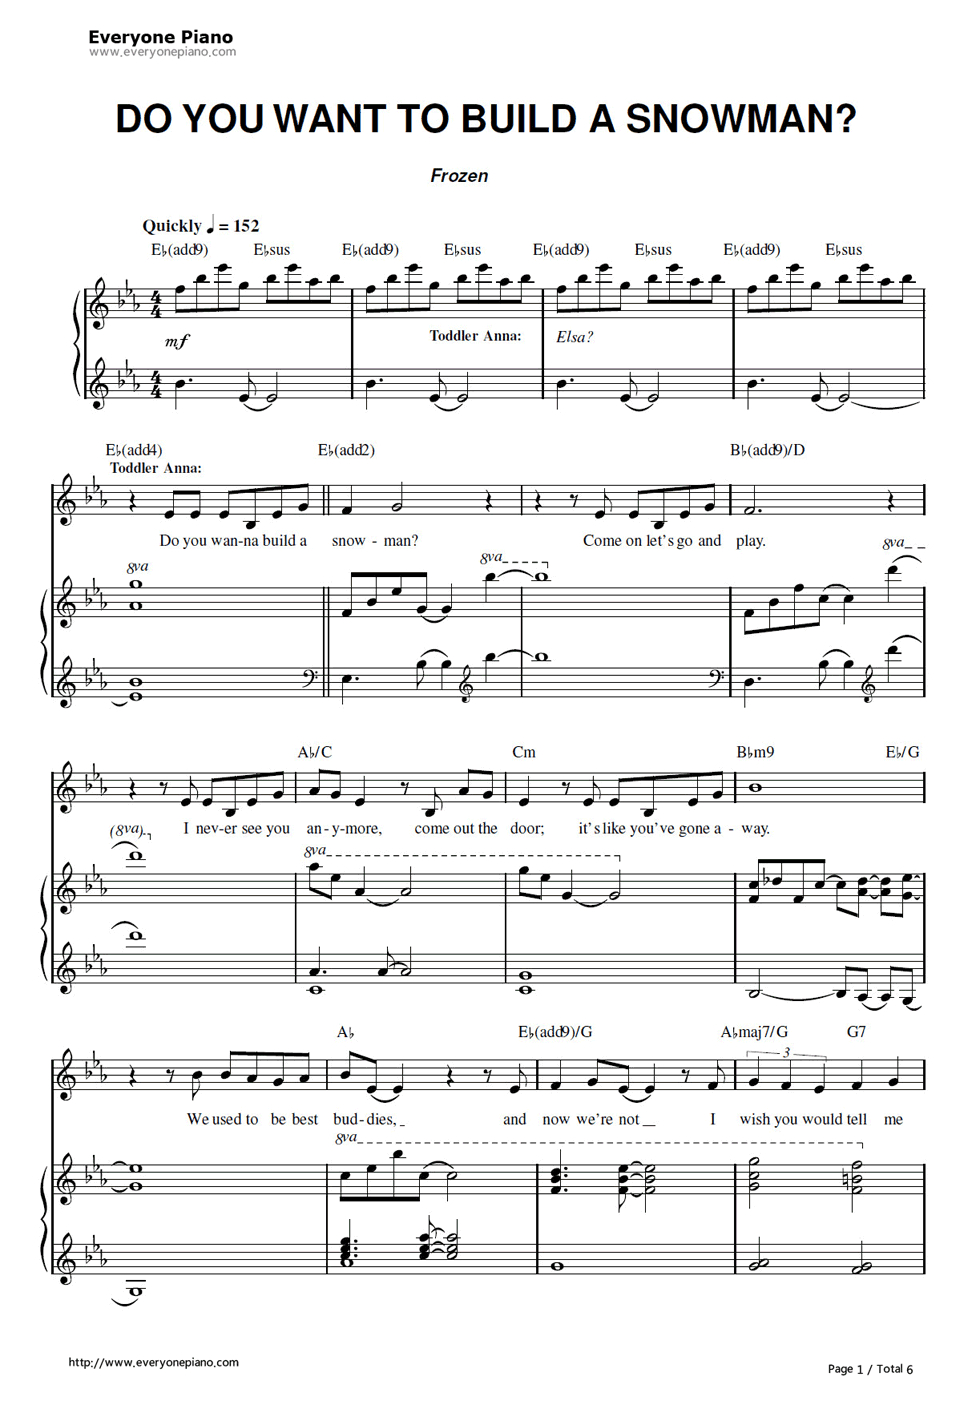 Free Do You Want To Build A Snowman-Frozen Ost Sheet Music Preview 1 - Frozen Piano Sheet Music Free Printable